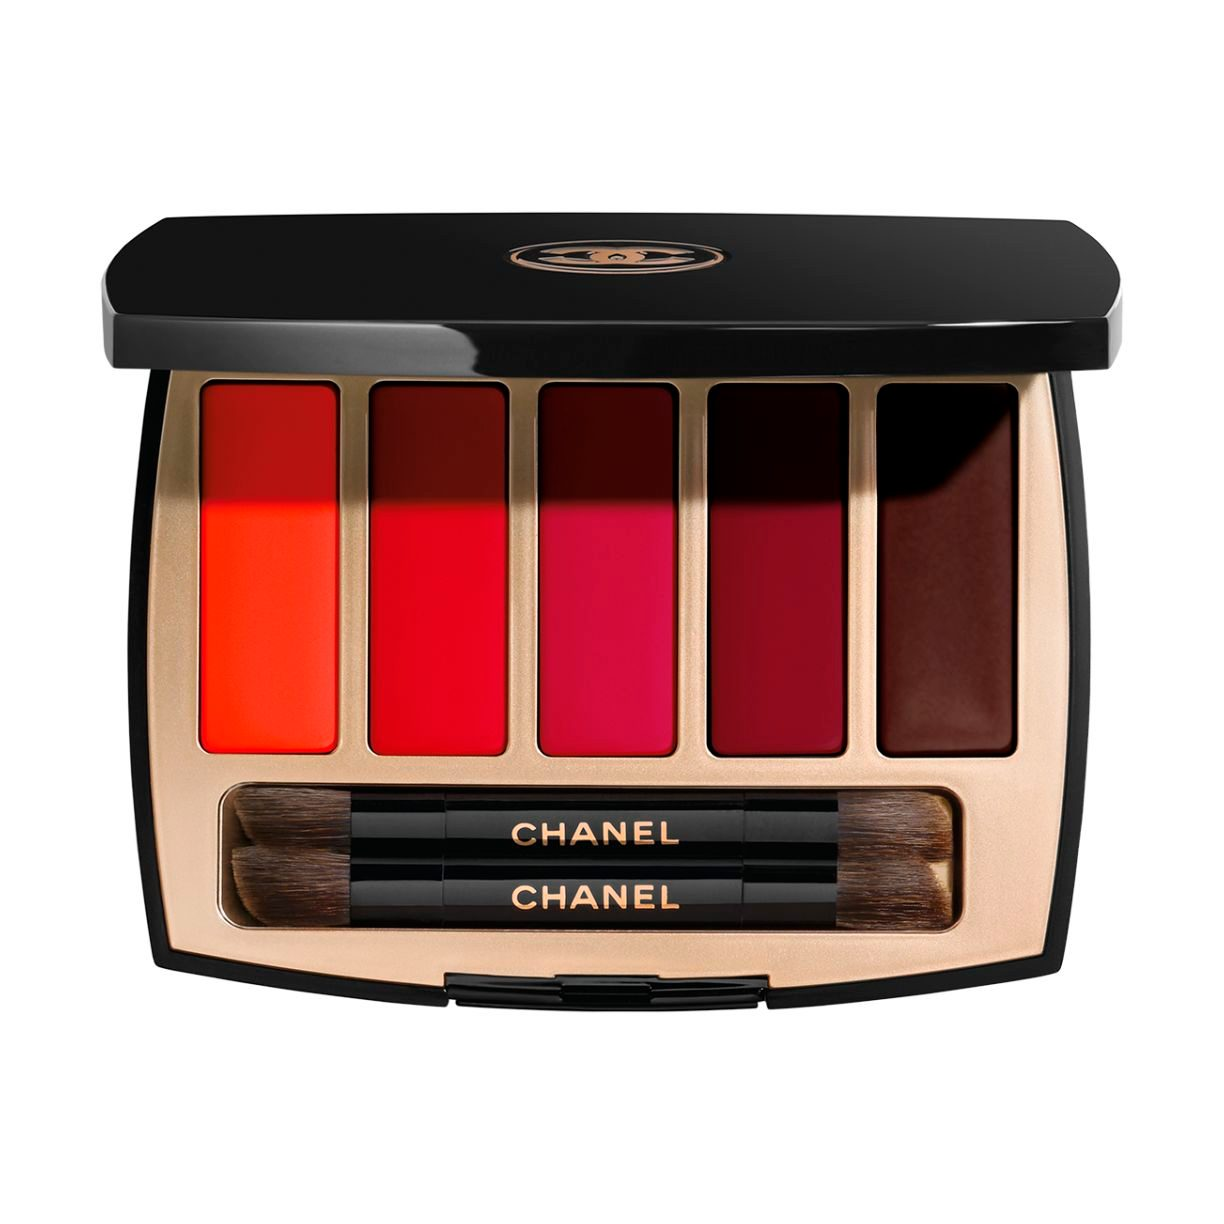 LA PALETTE CARACTÈRE EXCLUSIVE CREATION. LIPSTICK PALETTE 7.5g